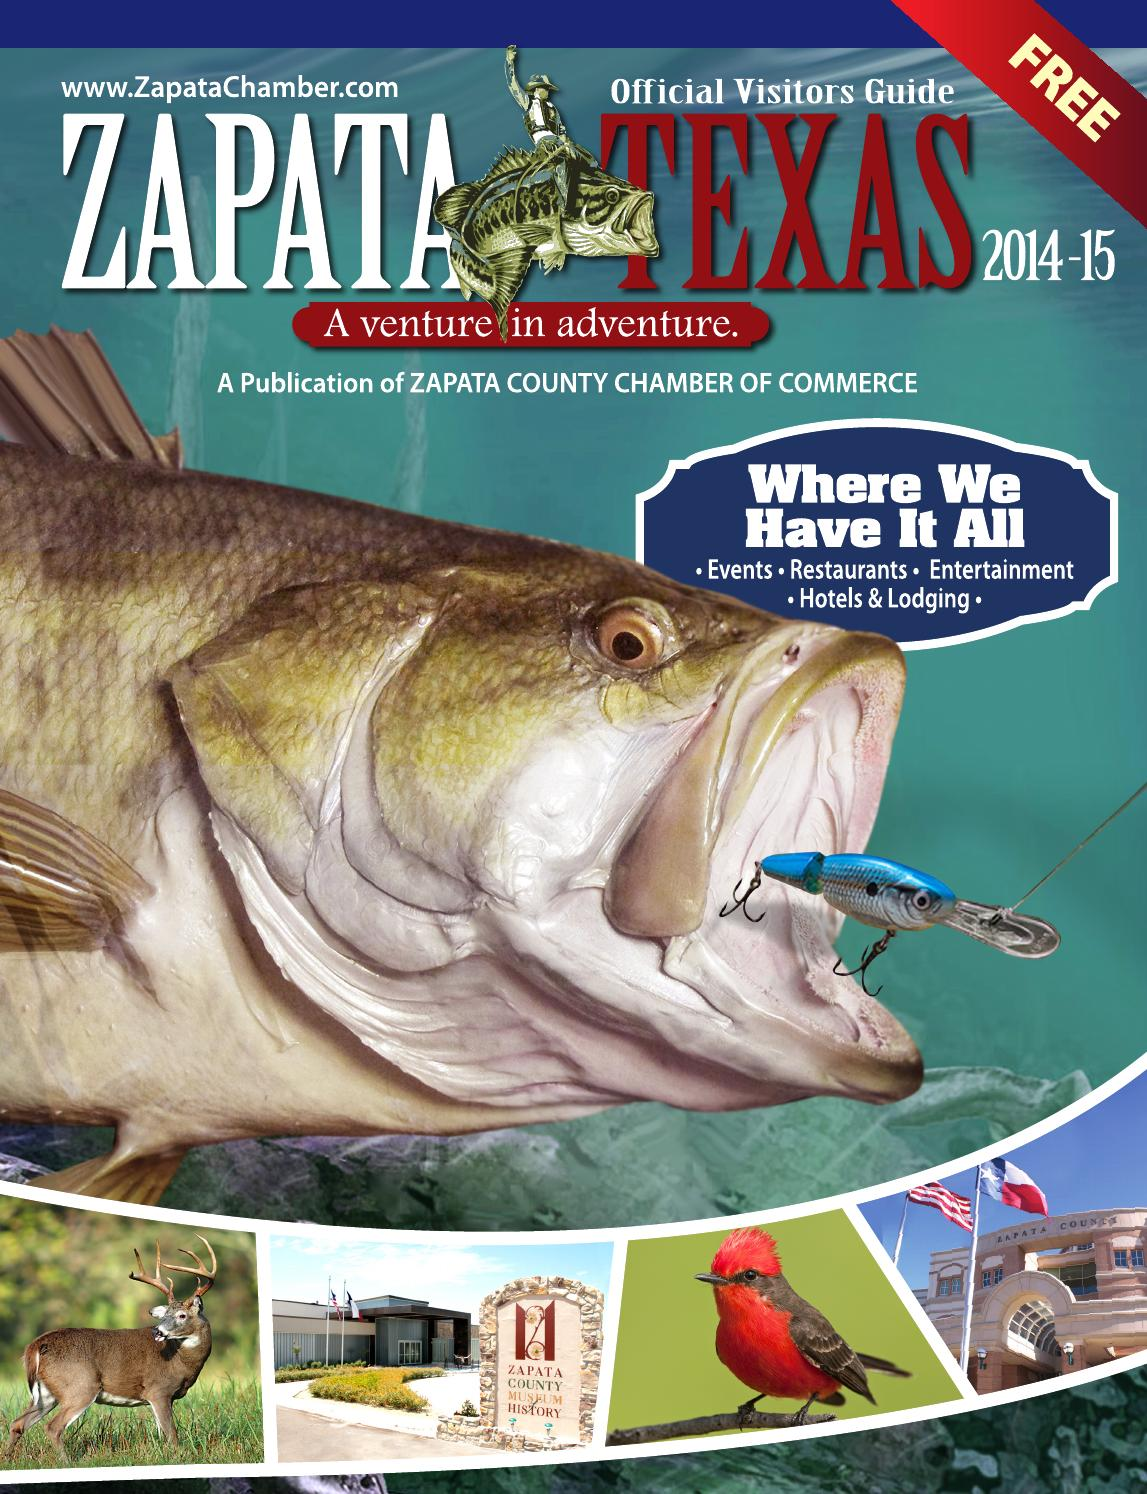 Zapata Official Visitors Guide 2014 2015 By Graphitiks